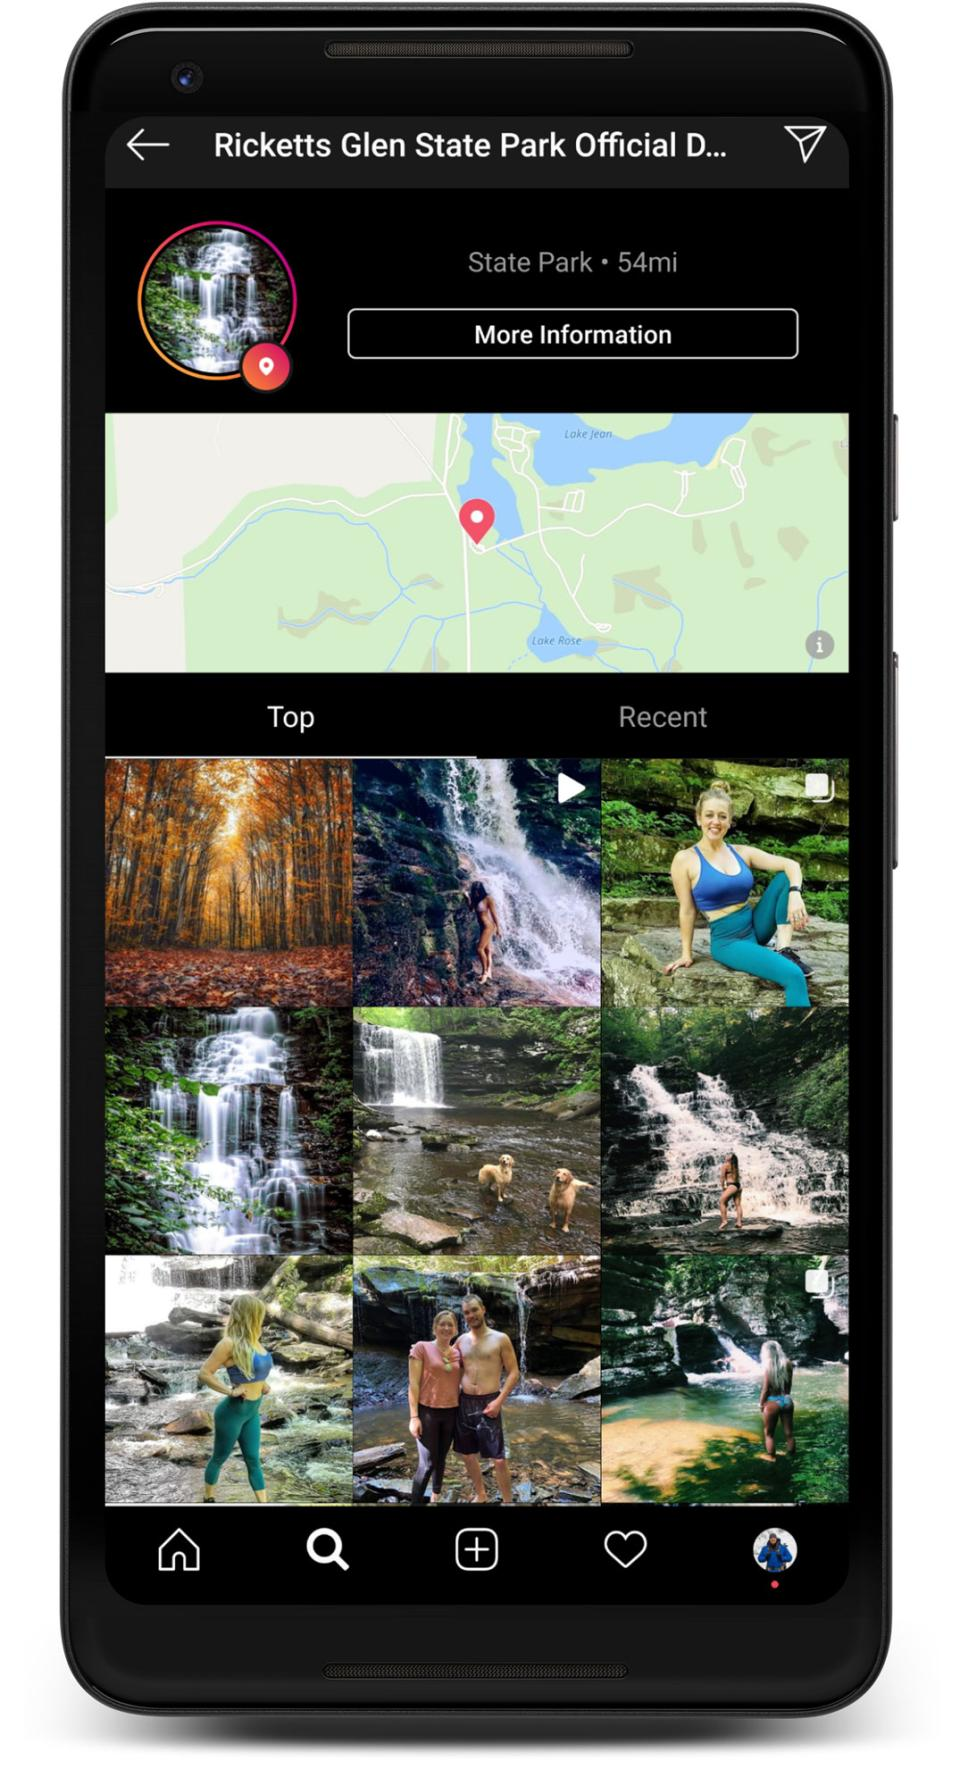 Using Instagram can give you a preview of the location you intend to go photograph.